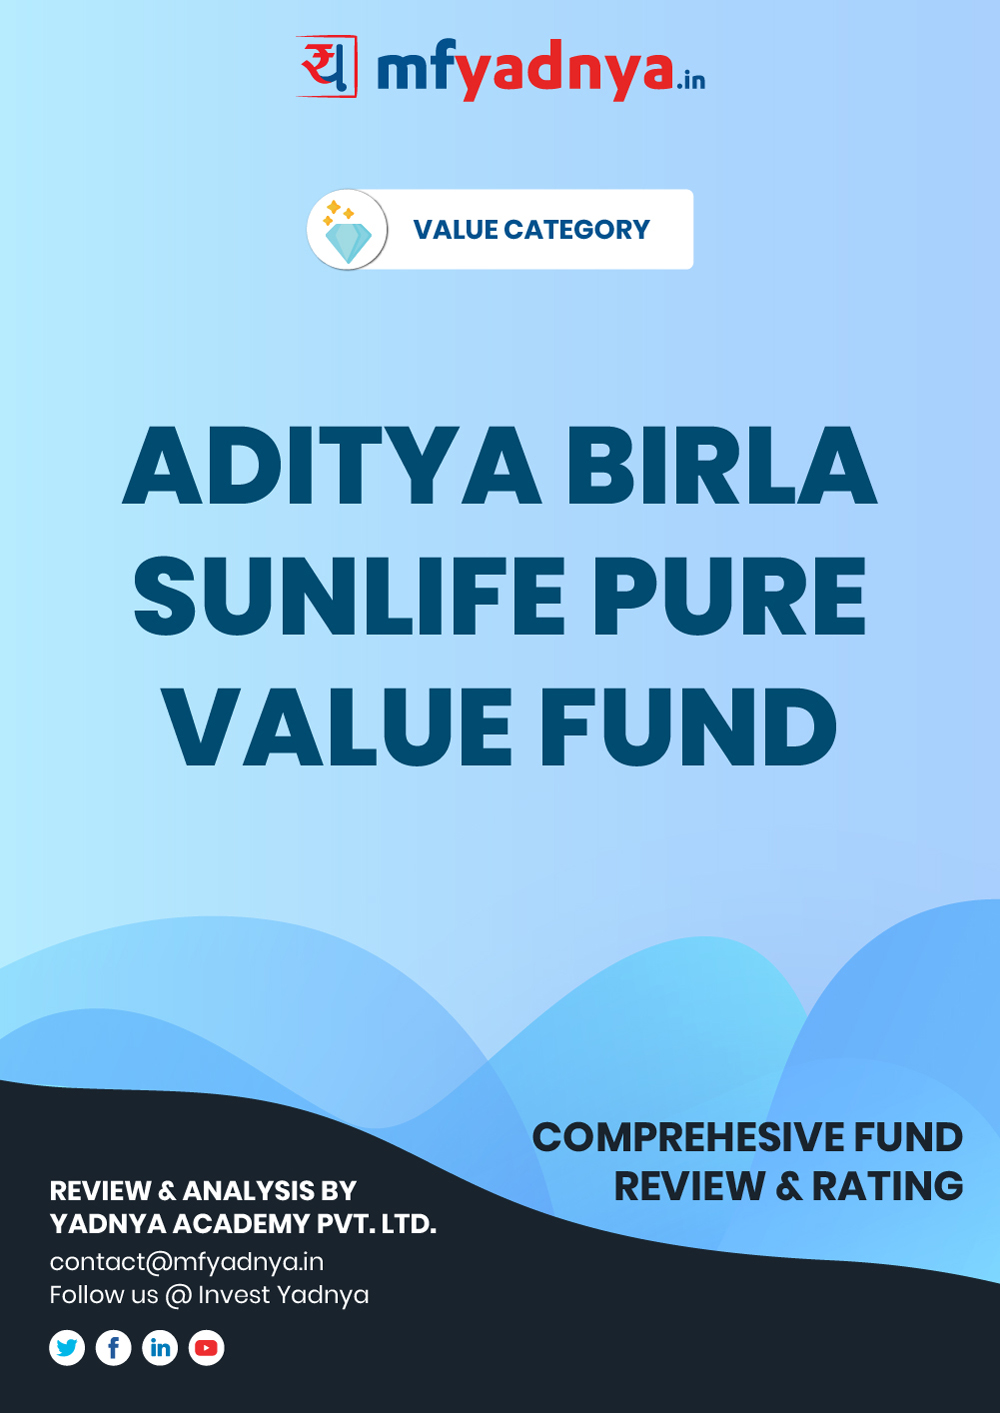 Value or Contra Category Review - Aditya Birla Sunlife Pure value Fund. Most Comprehensive and detailed MF review based on Yadnya's proprietary methodology of Green, Yellow & Red Star. Detailed Analysis & Review based on Sept 30th, 2019 data.